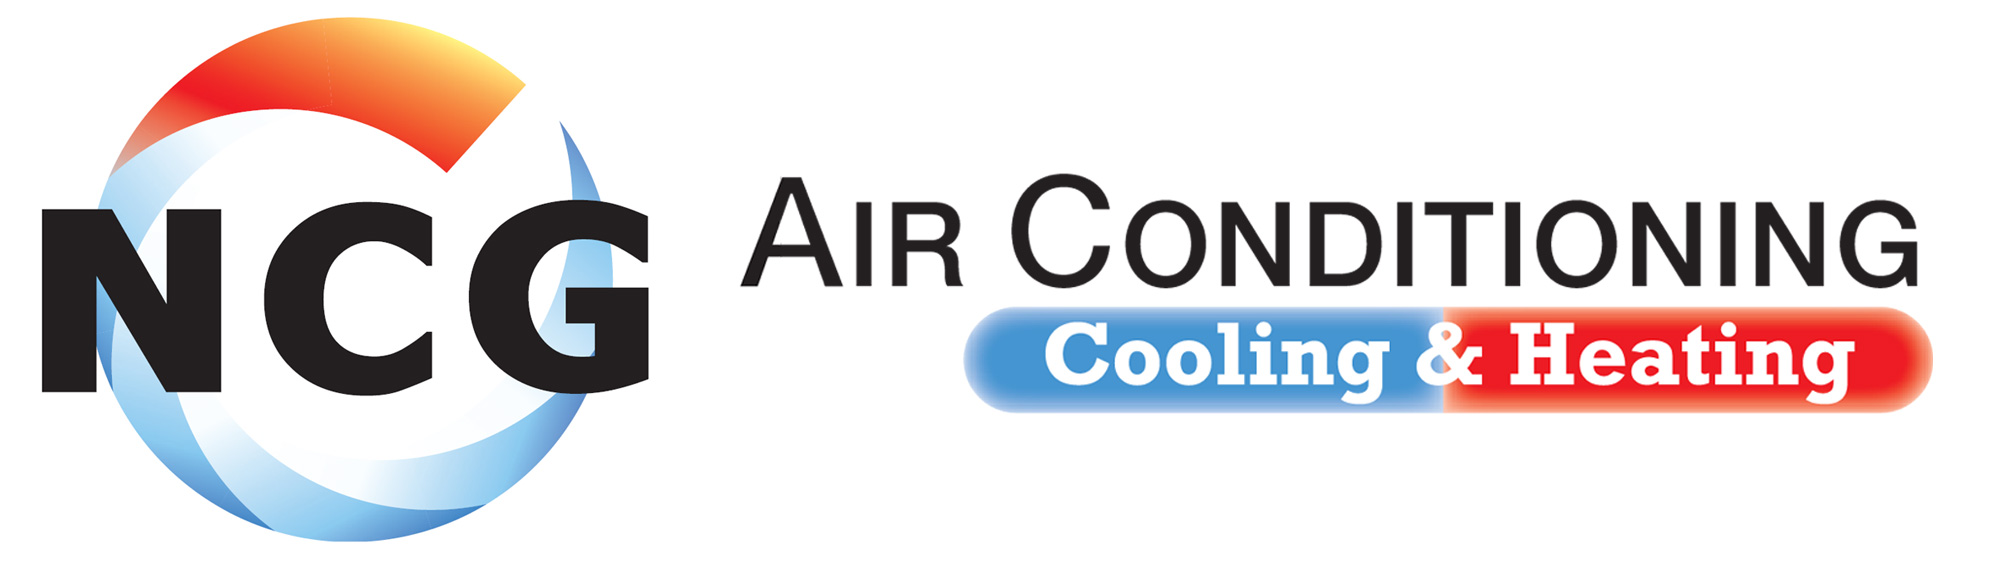 NCG Air Conditioning